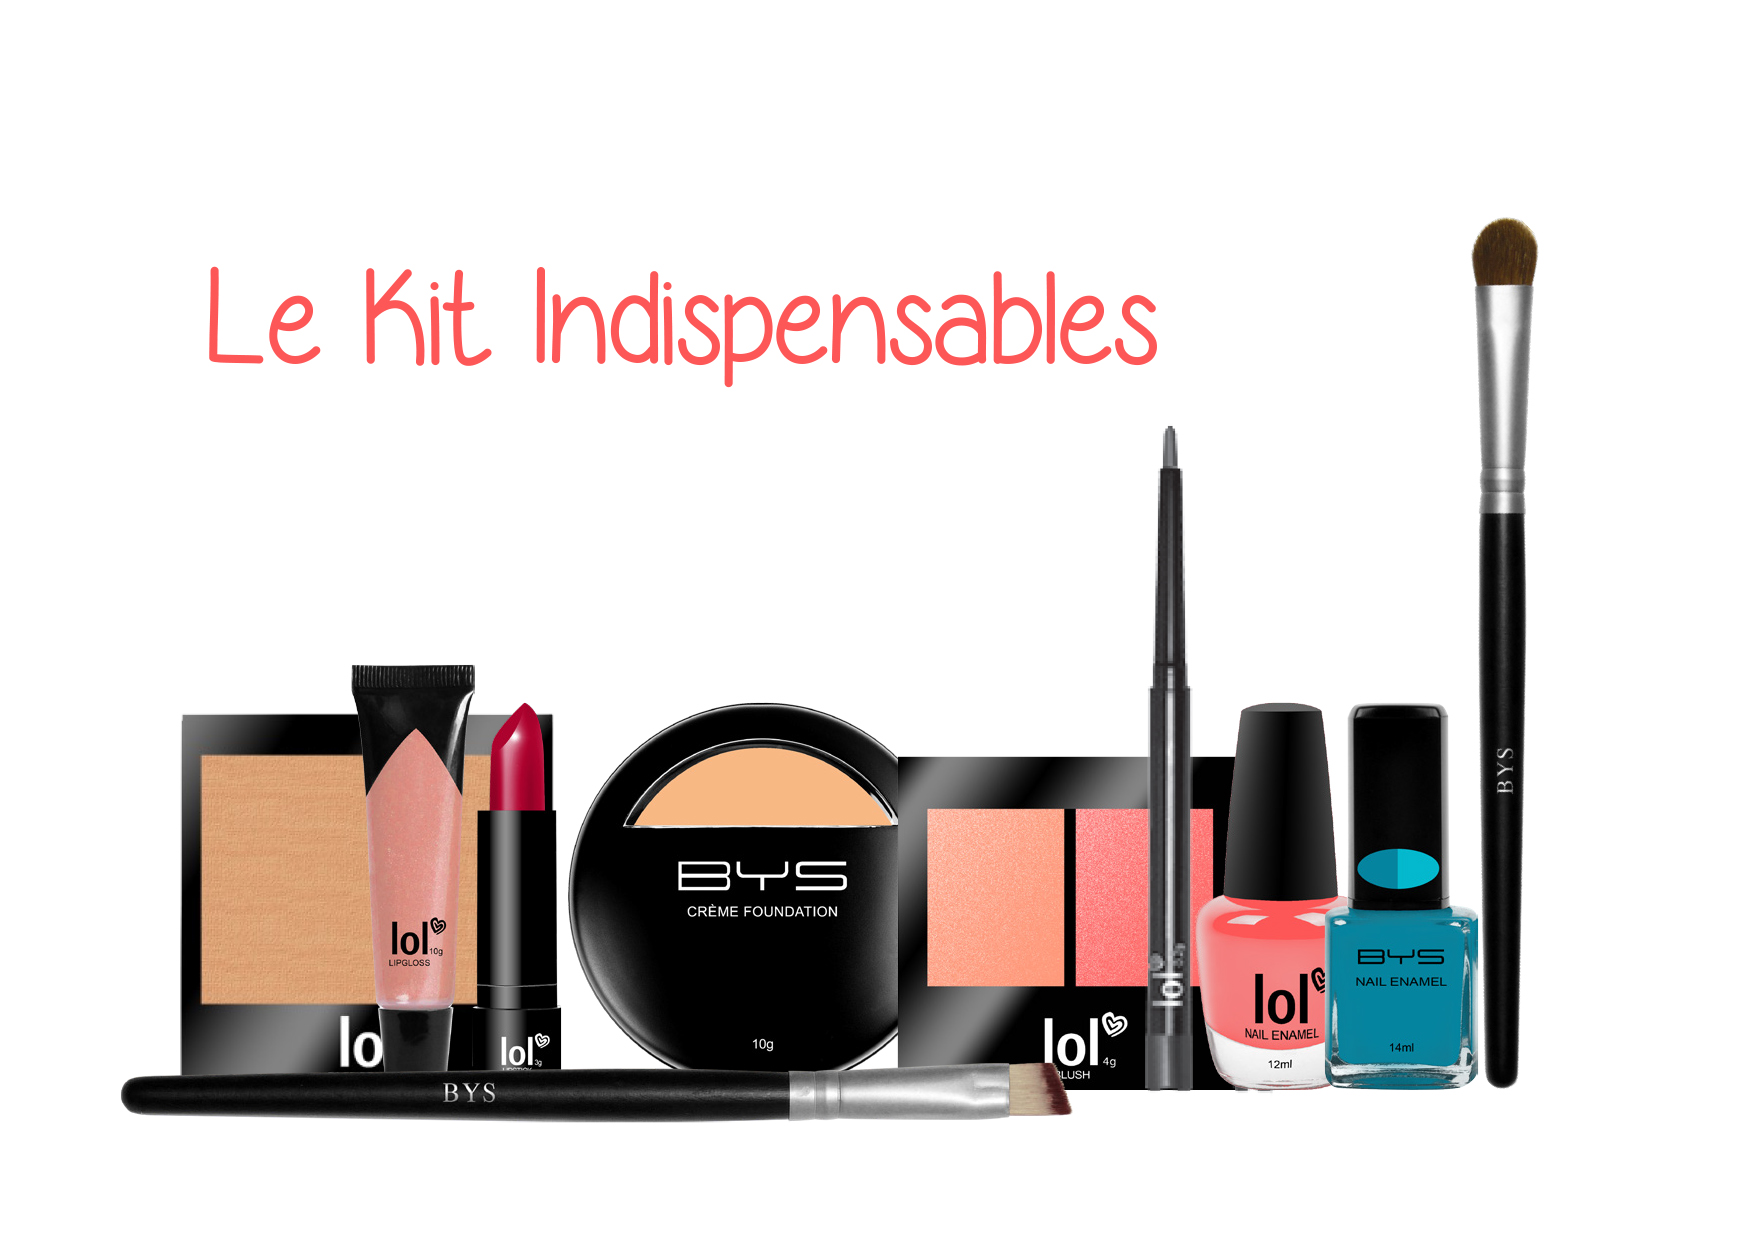 Kit indispensables BYS Maquillage